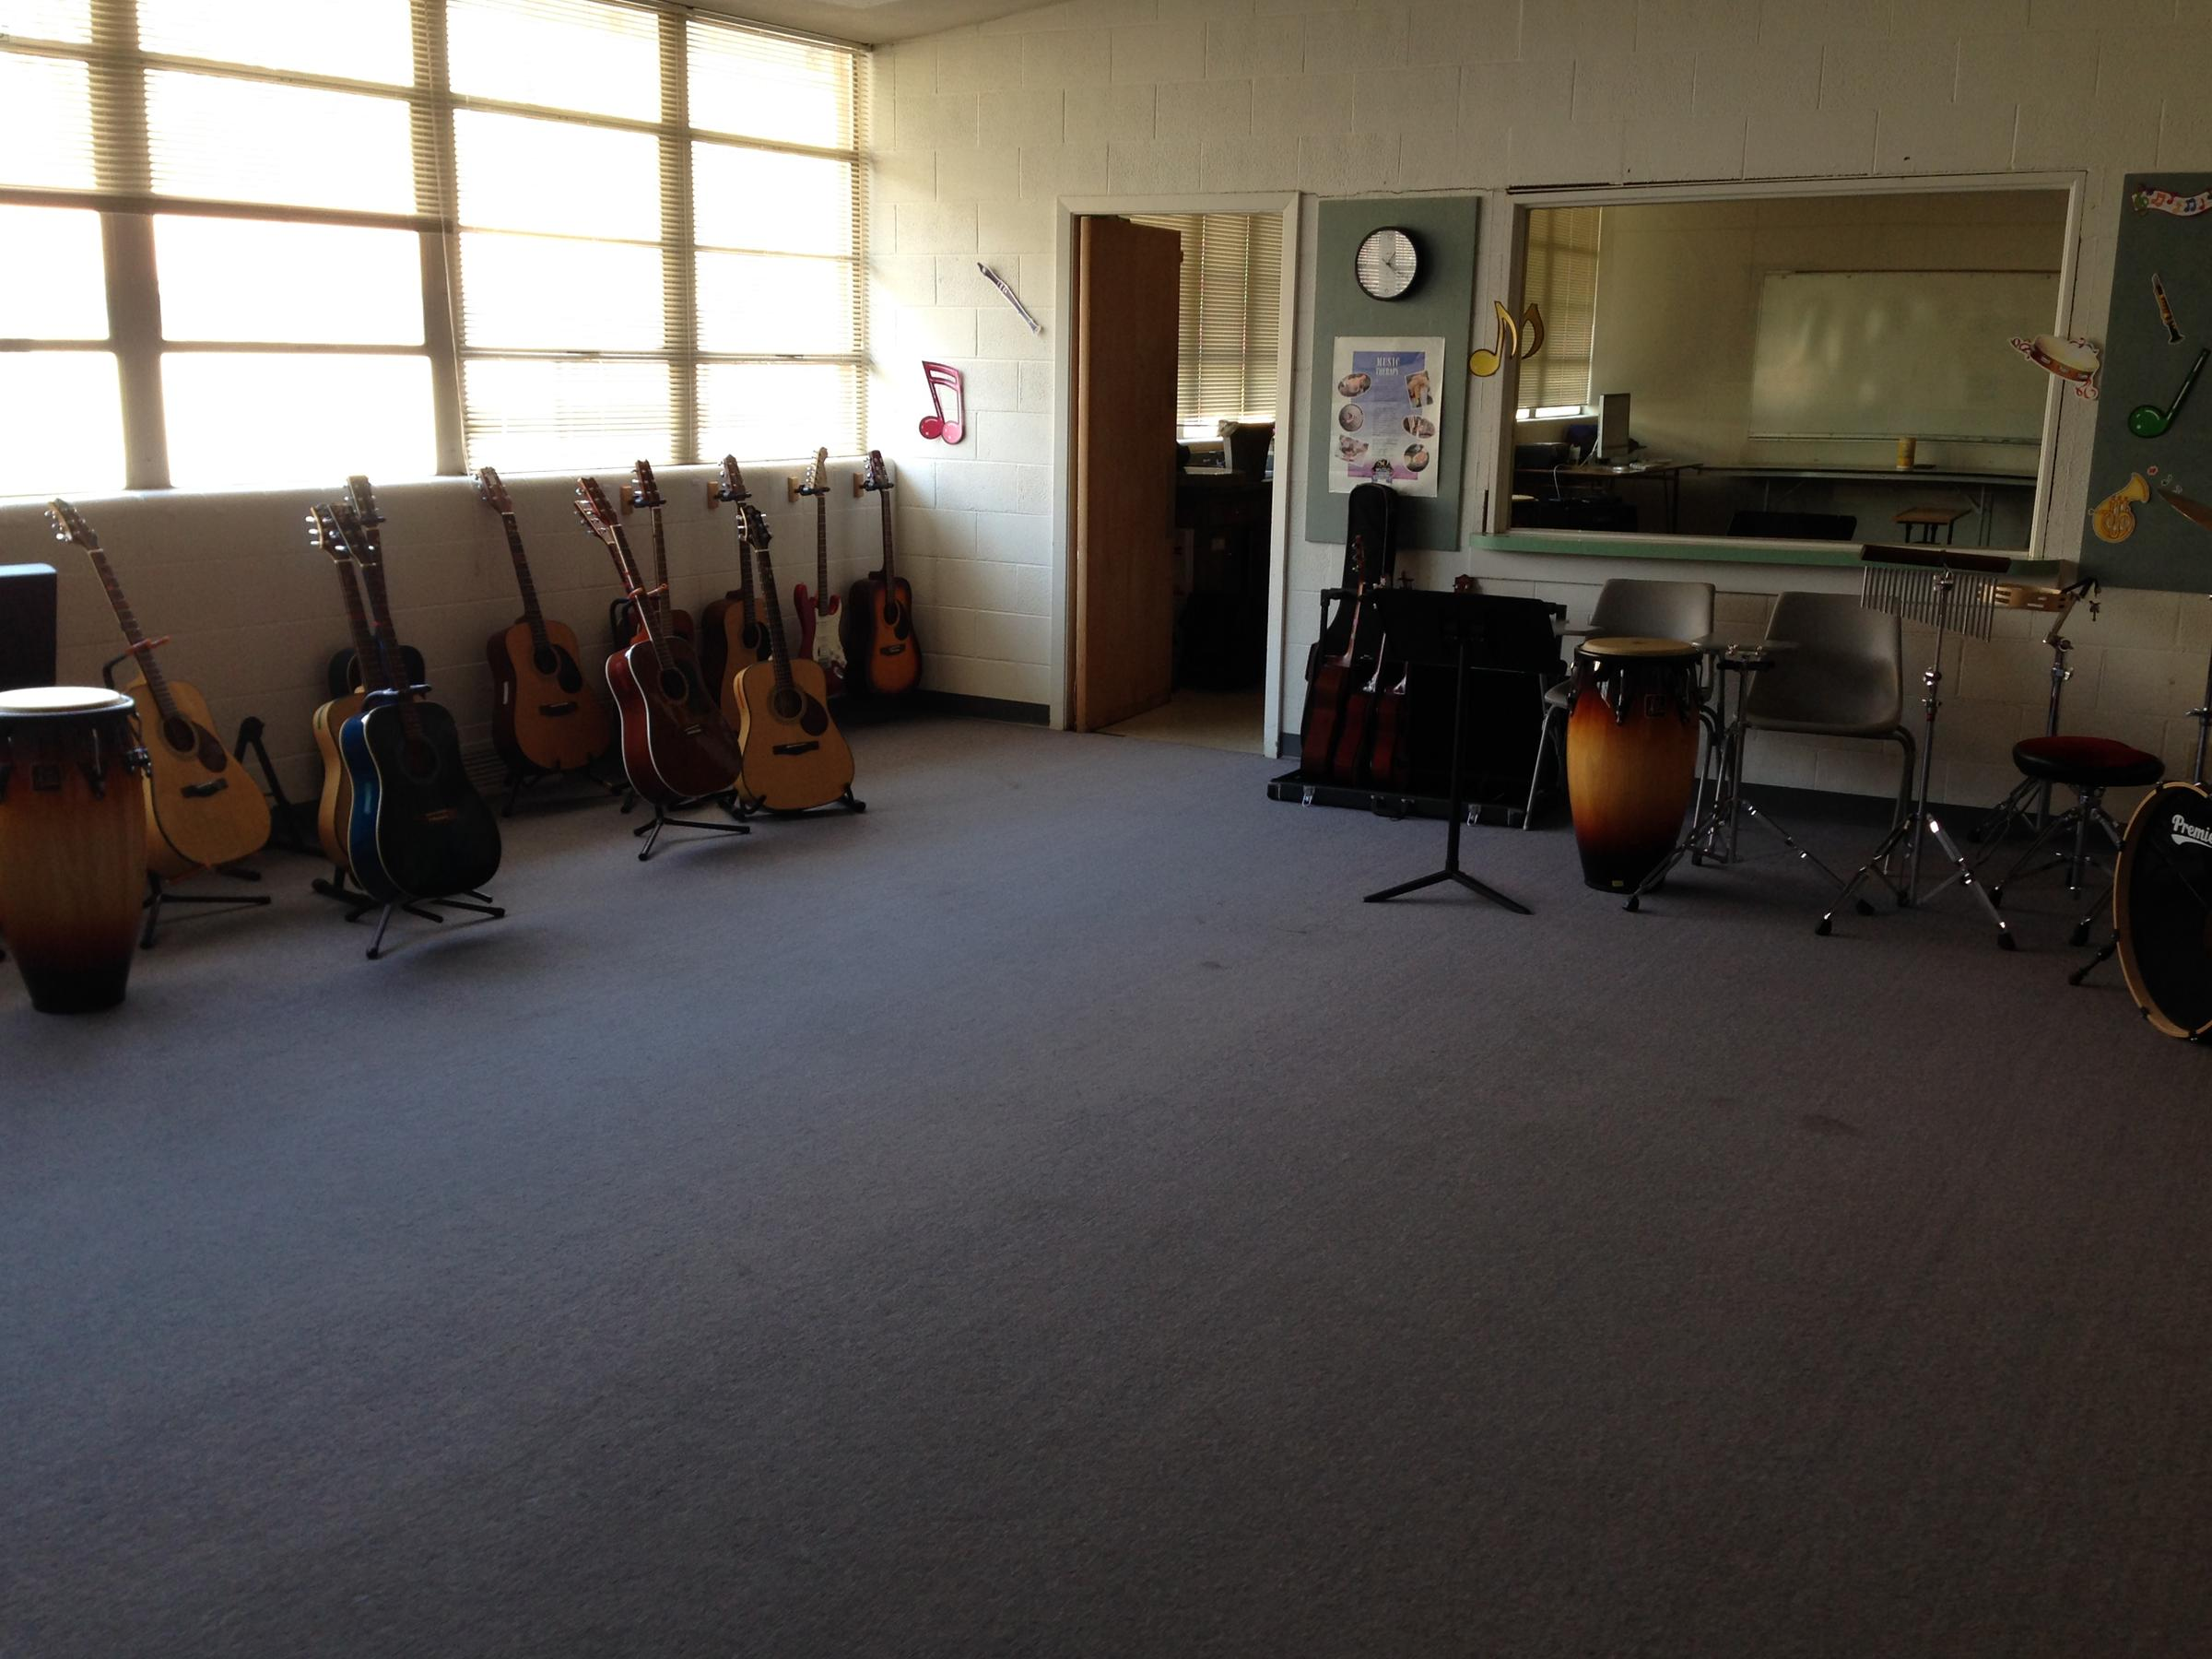 Morgan Robertson Calls This The Rock Band Room At Drury Center For Music Therapy And Wellness